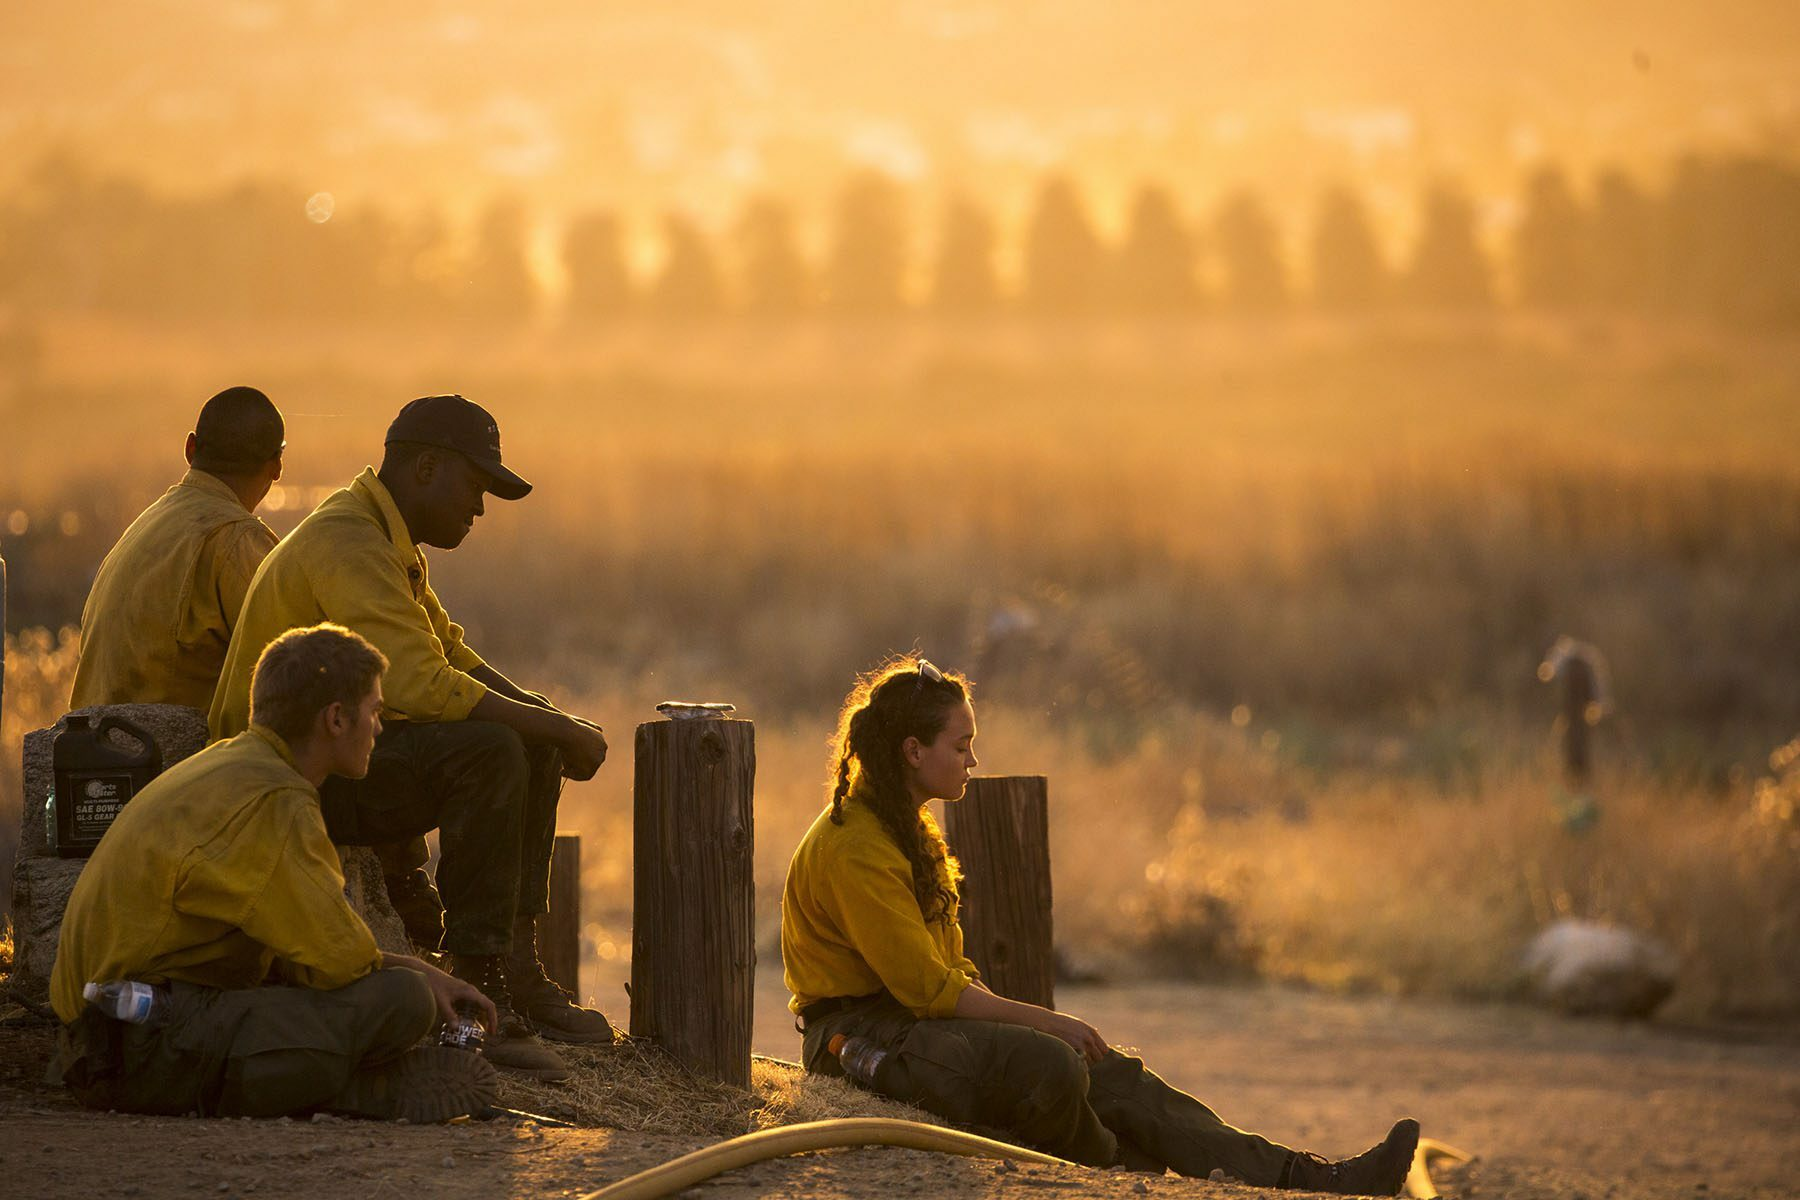 Three male firefighters and one female sit on the ground as golden light and smoke is seen in the distance.